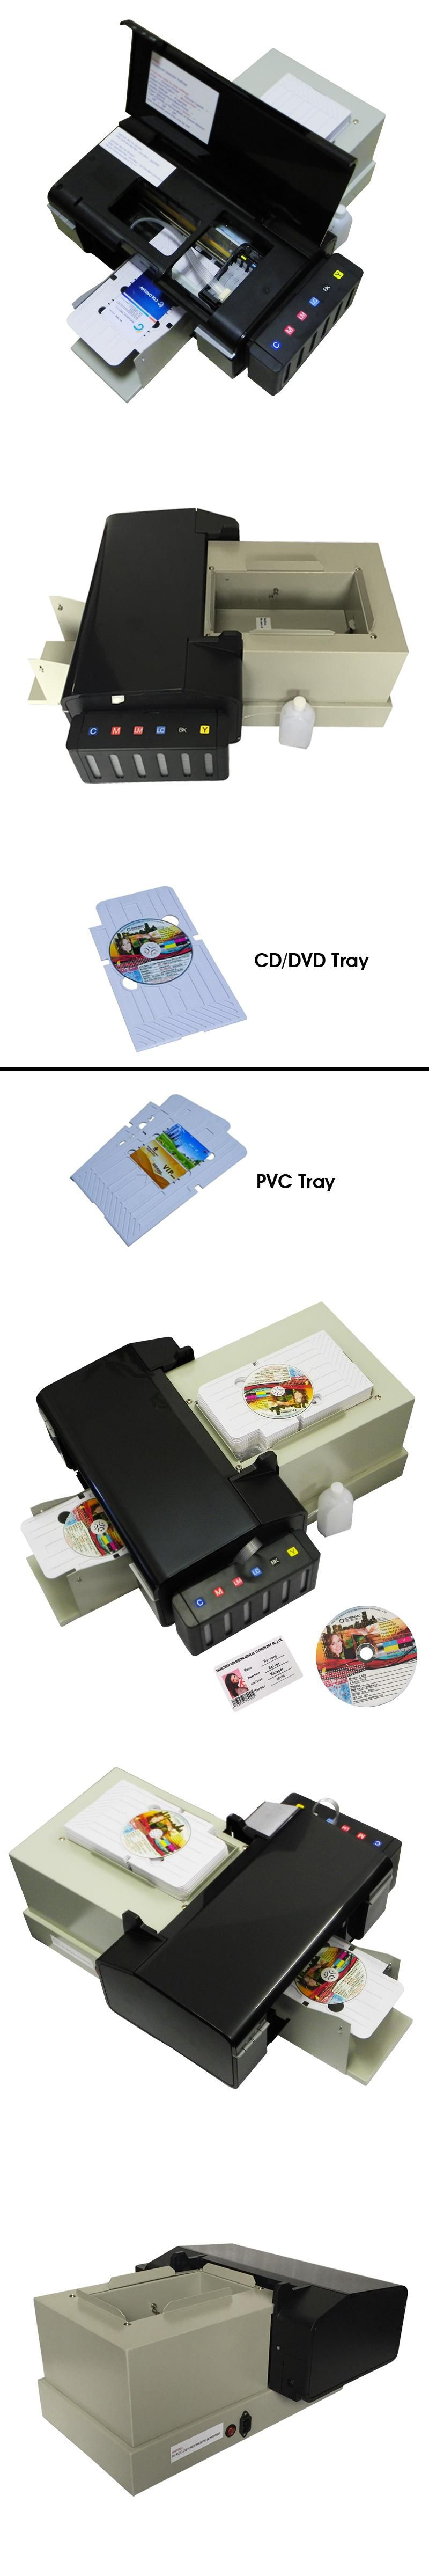 Automatic CD Printer For Epson L800 PVC Card Printers with 51pcs CD PVC Tray DVD